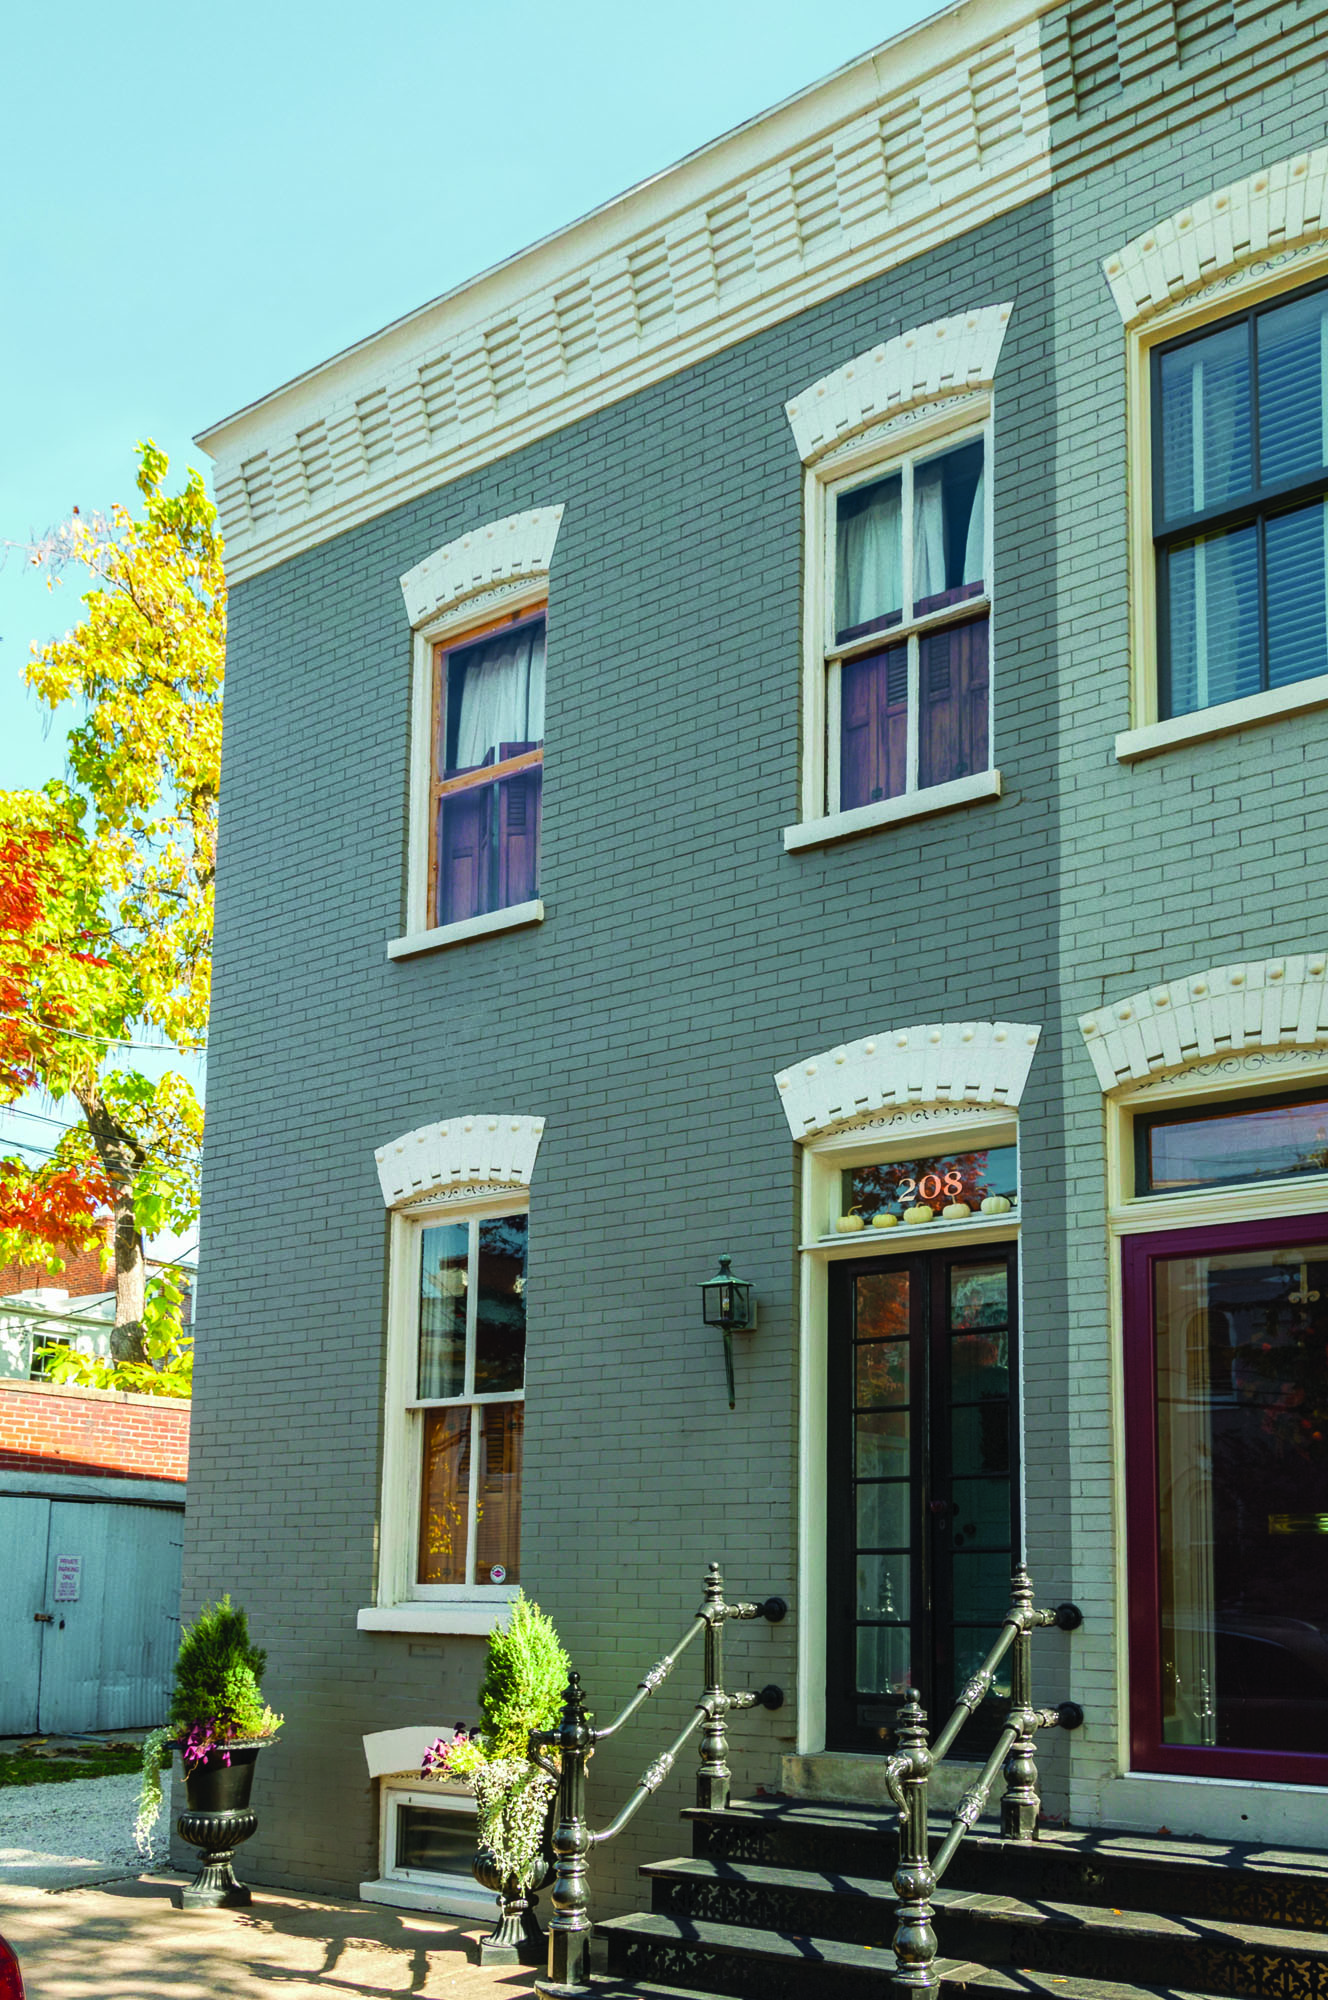 Since 2011, Alex and Wendy Santantonio have been blogging about the restoration of their 1880s brick row house in Old Town Alexandria, Virginia.